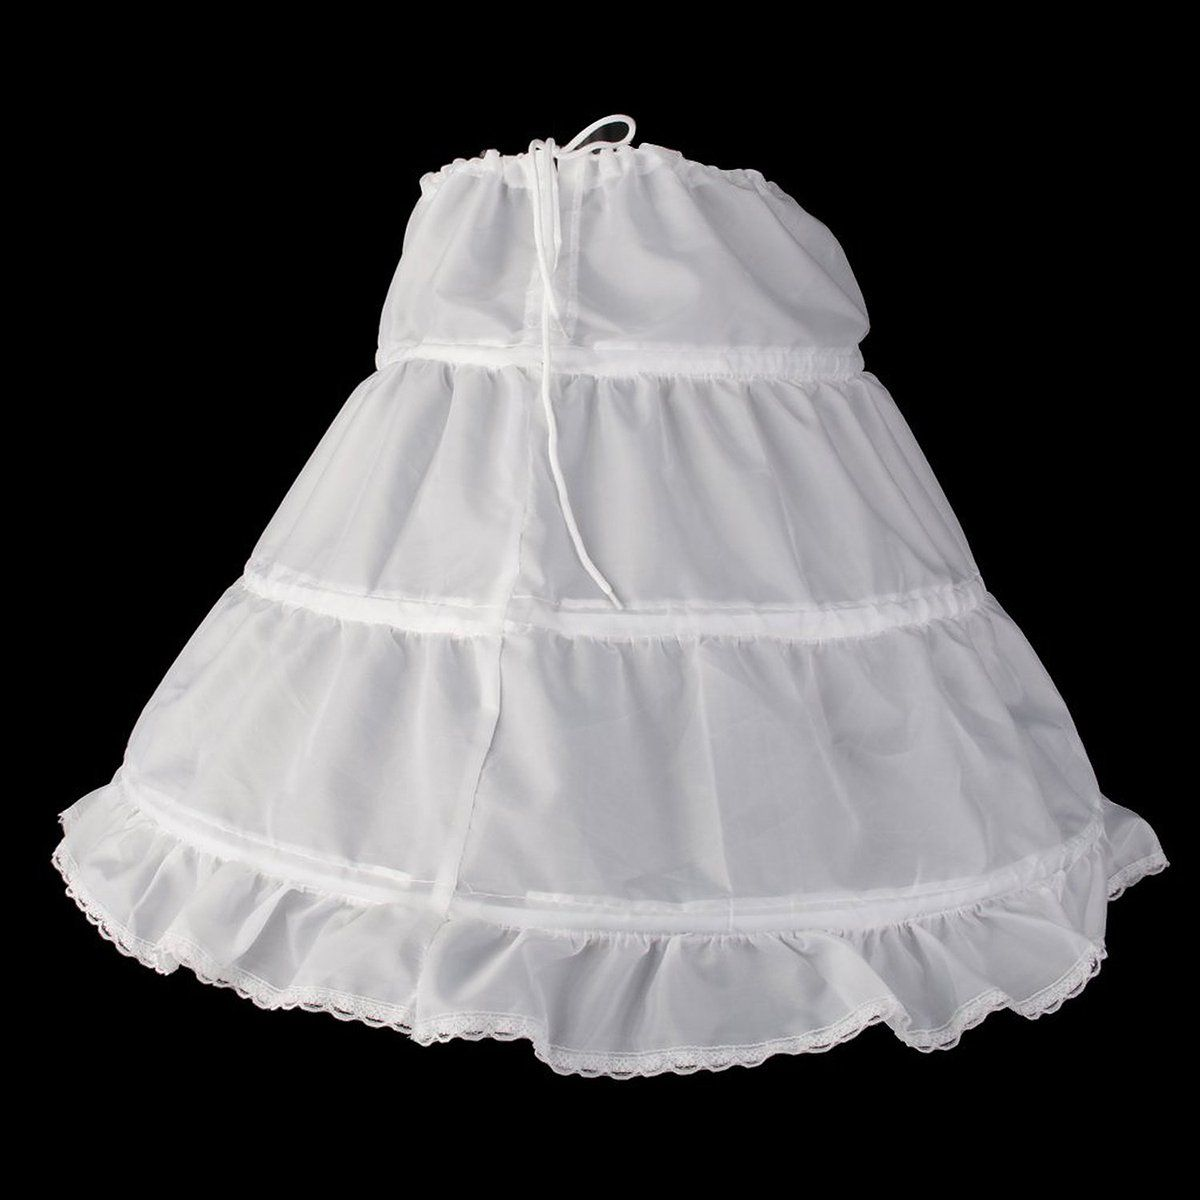 dbf7ef90c OULII Girls Petticoat Half Slip 3 Hoop Flower Girl Crinoline Petticoat  Skirt White One Size ** Find out more about the great product at the image  link.